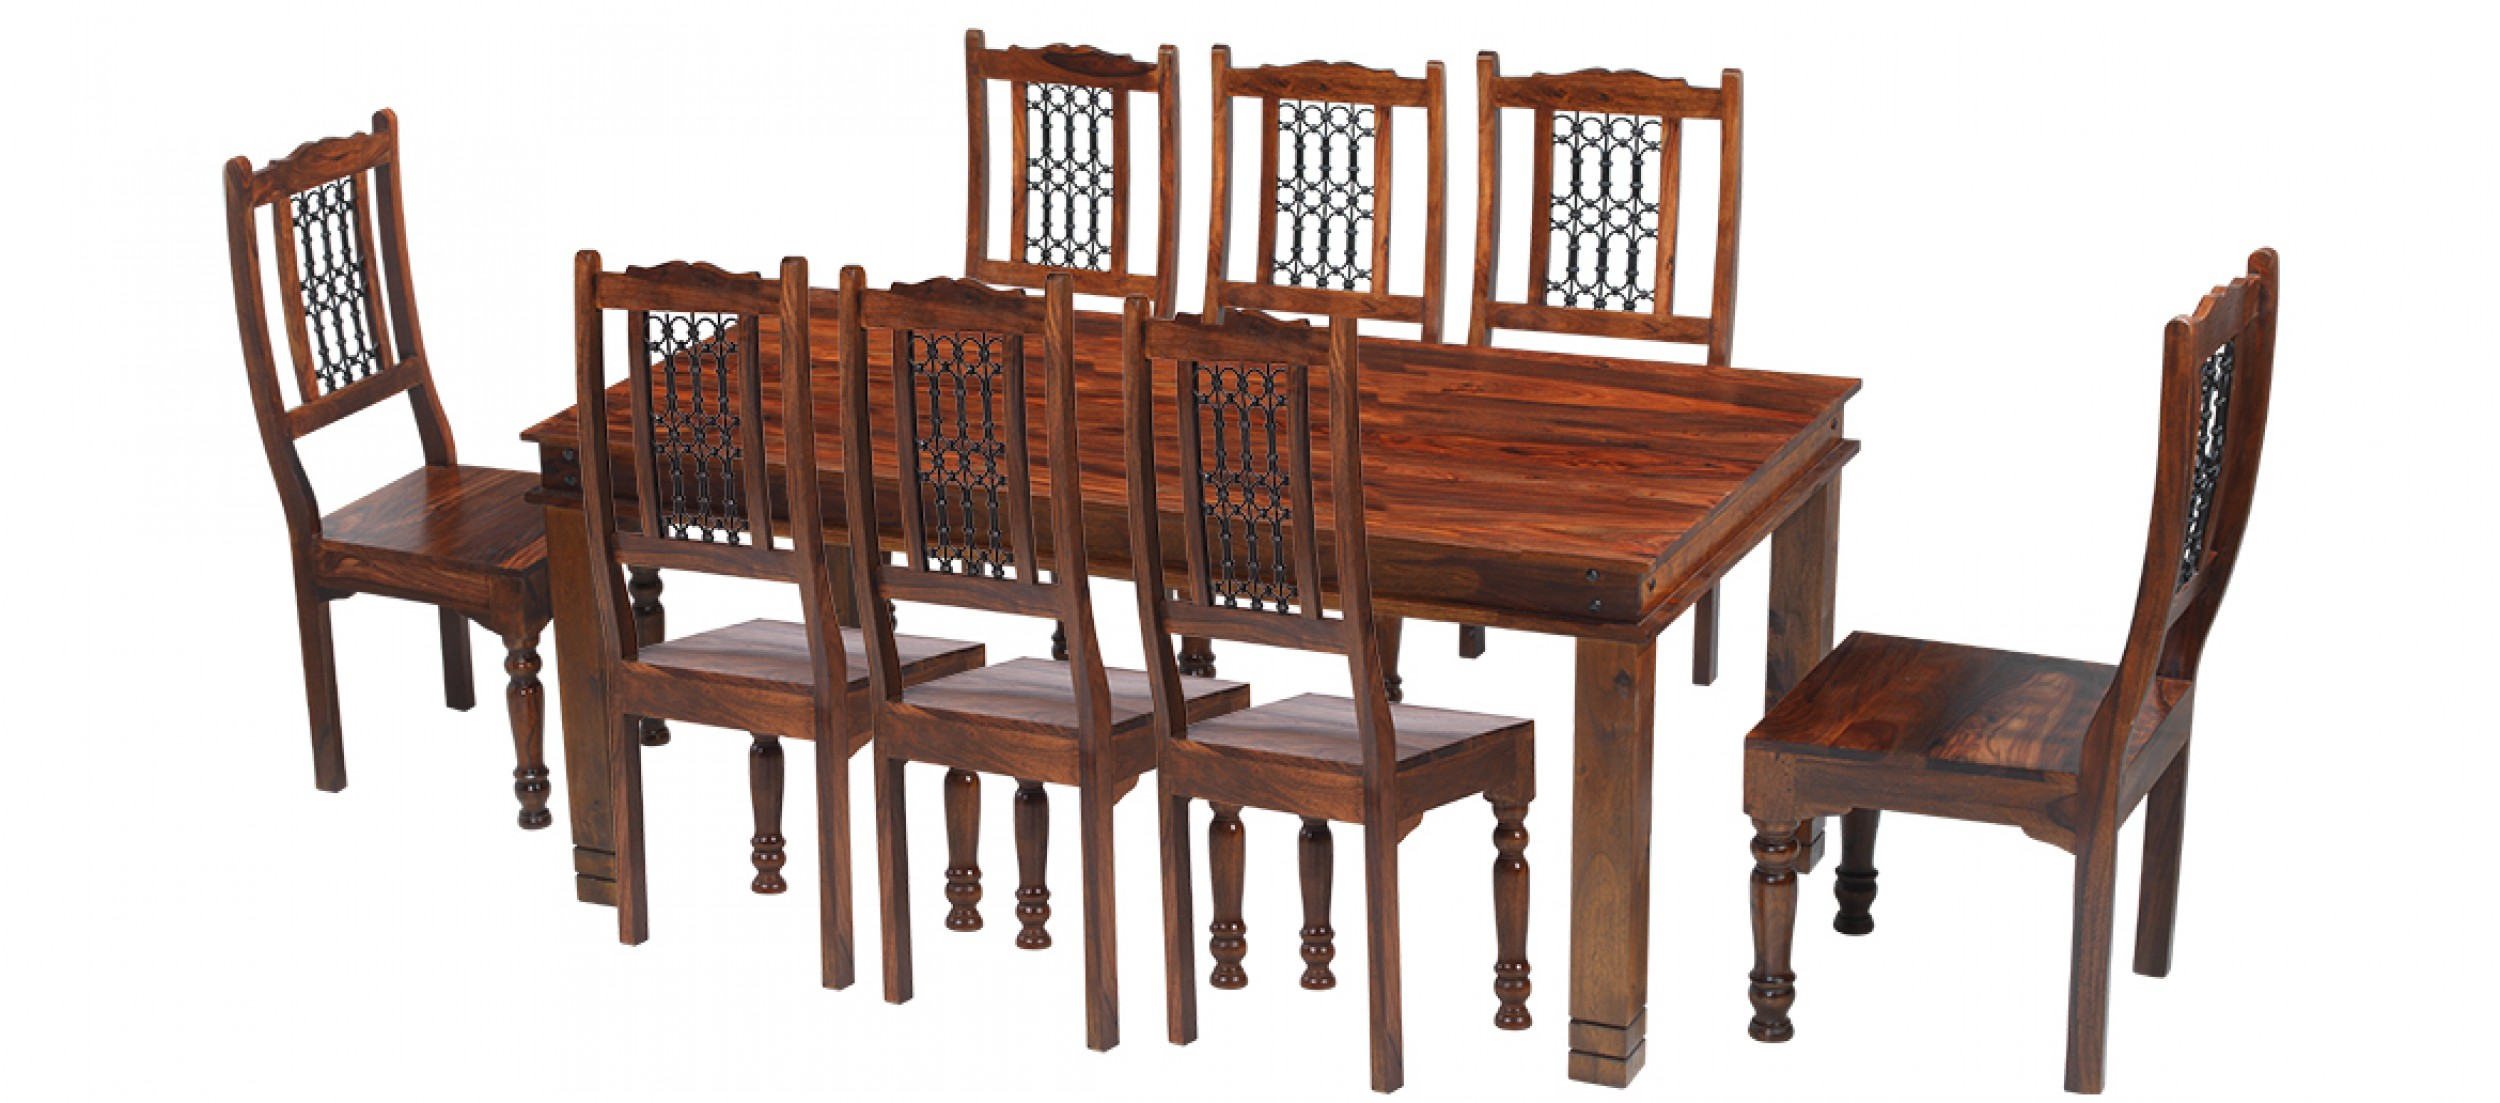 Dining Table 8 Chairs Jali Sheesham 200 Cm Chunky Dining Table And 8 Chairs